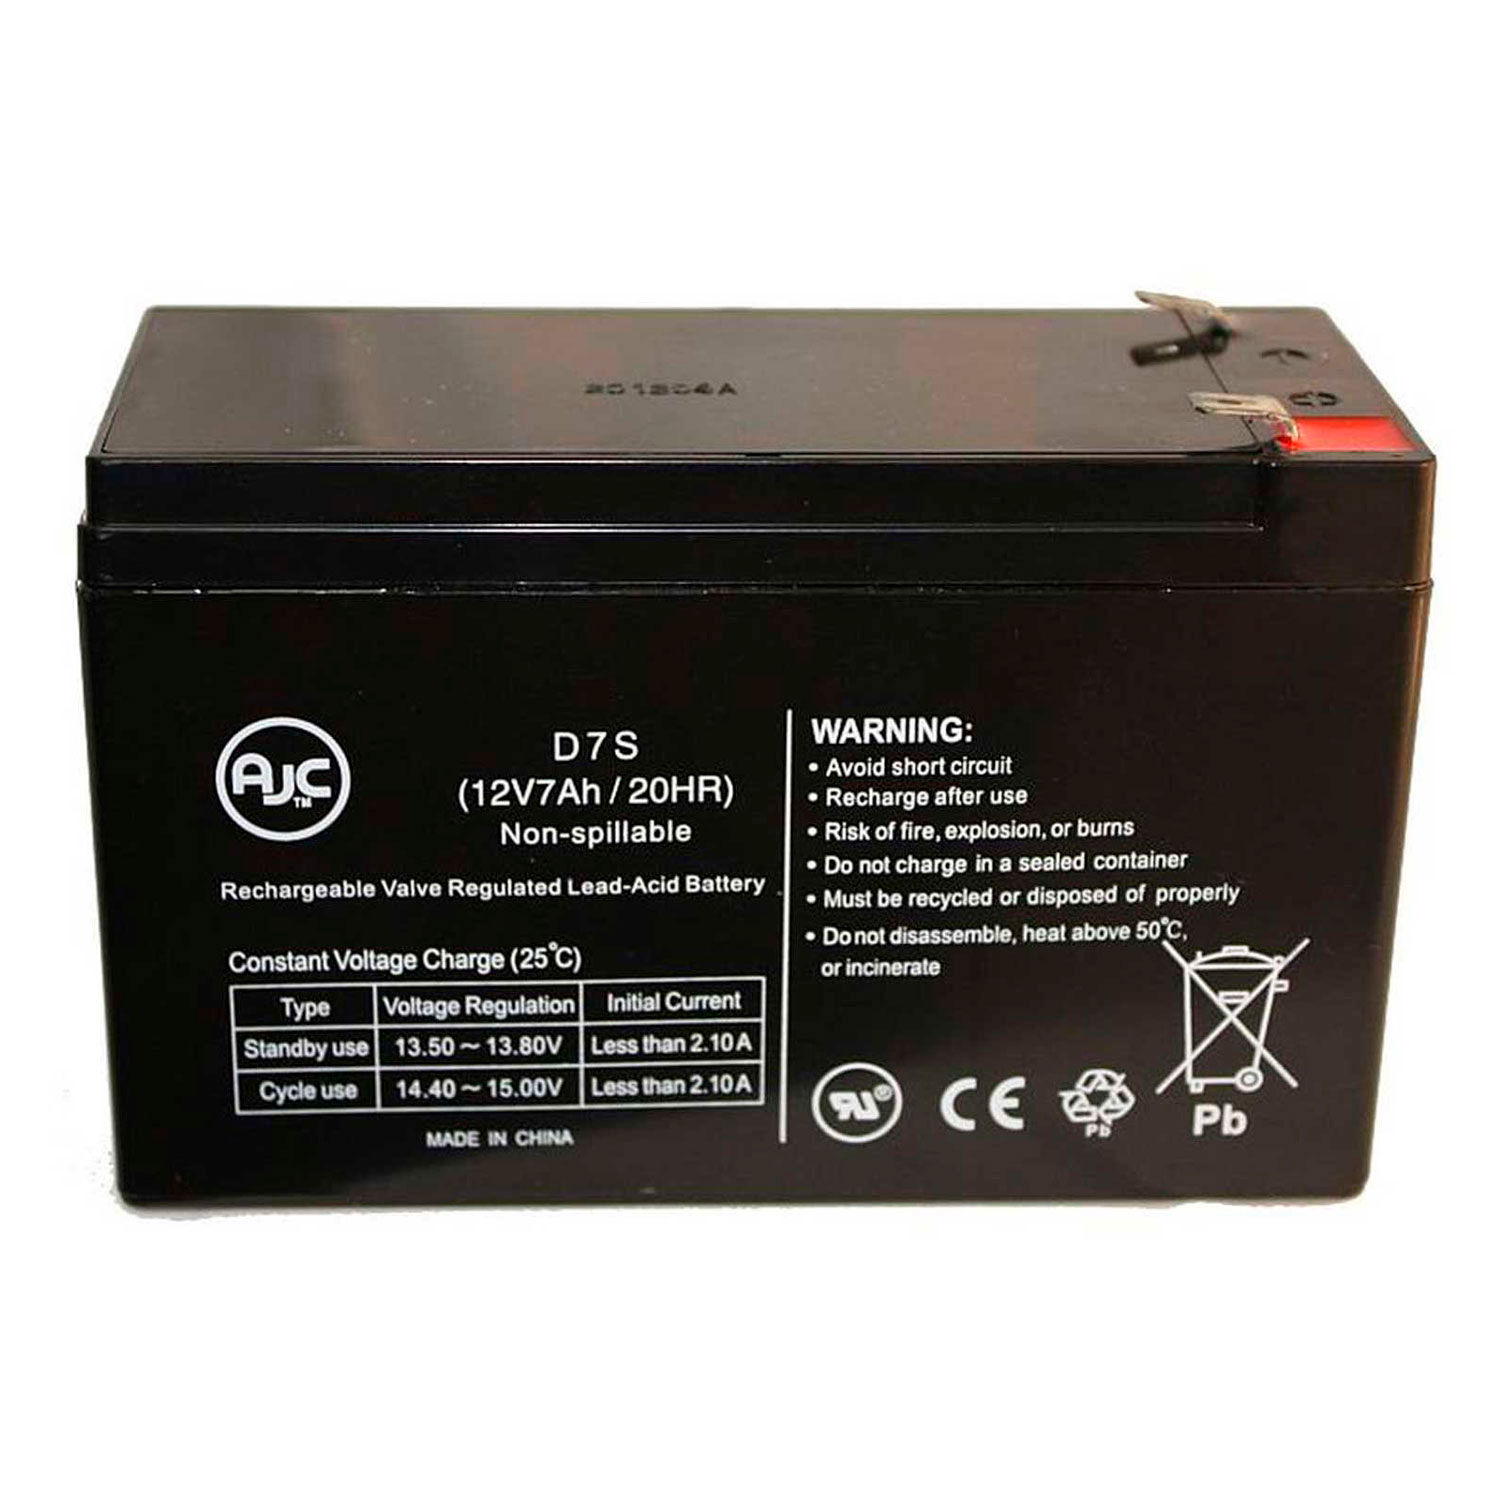 VRLA Replacement Battery Long Way LW-6FM7.6J Sealed Lead Acid AGM